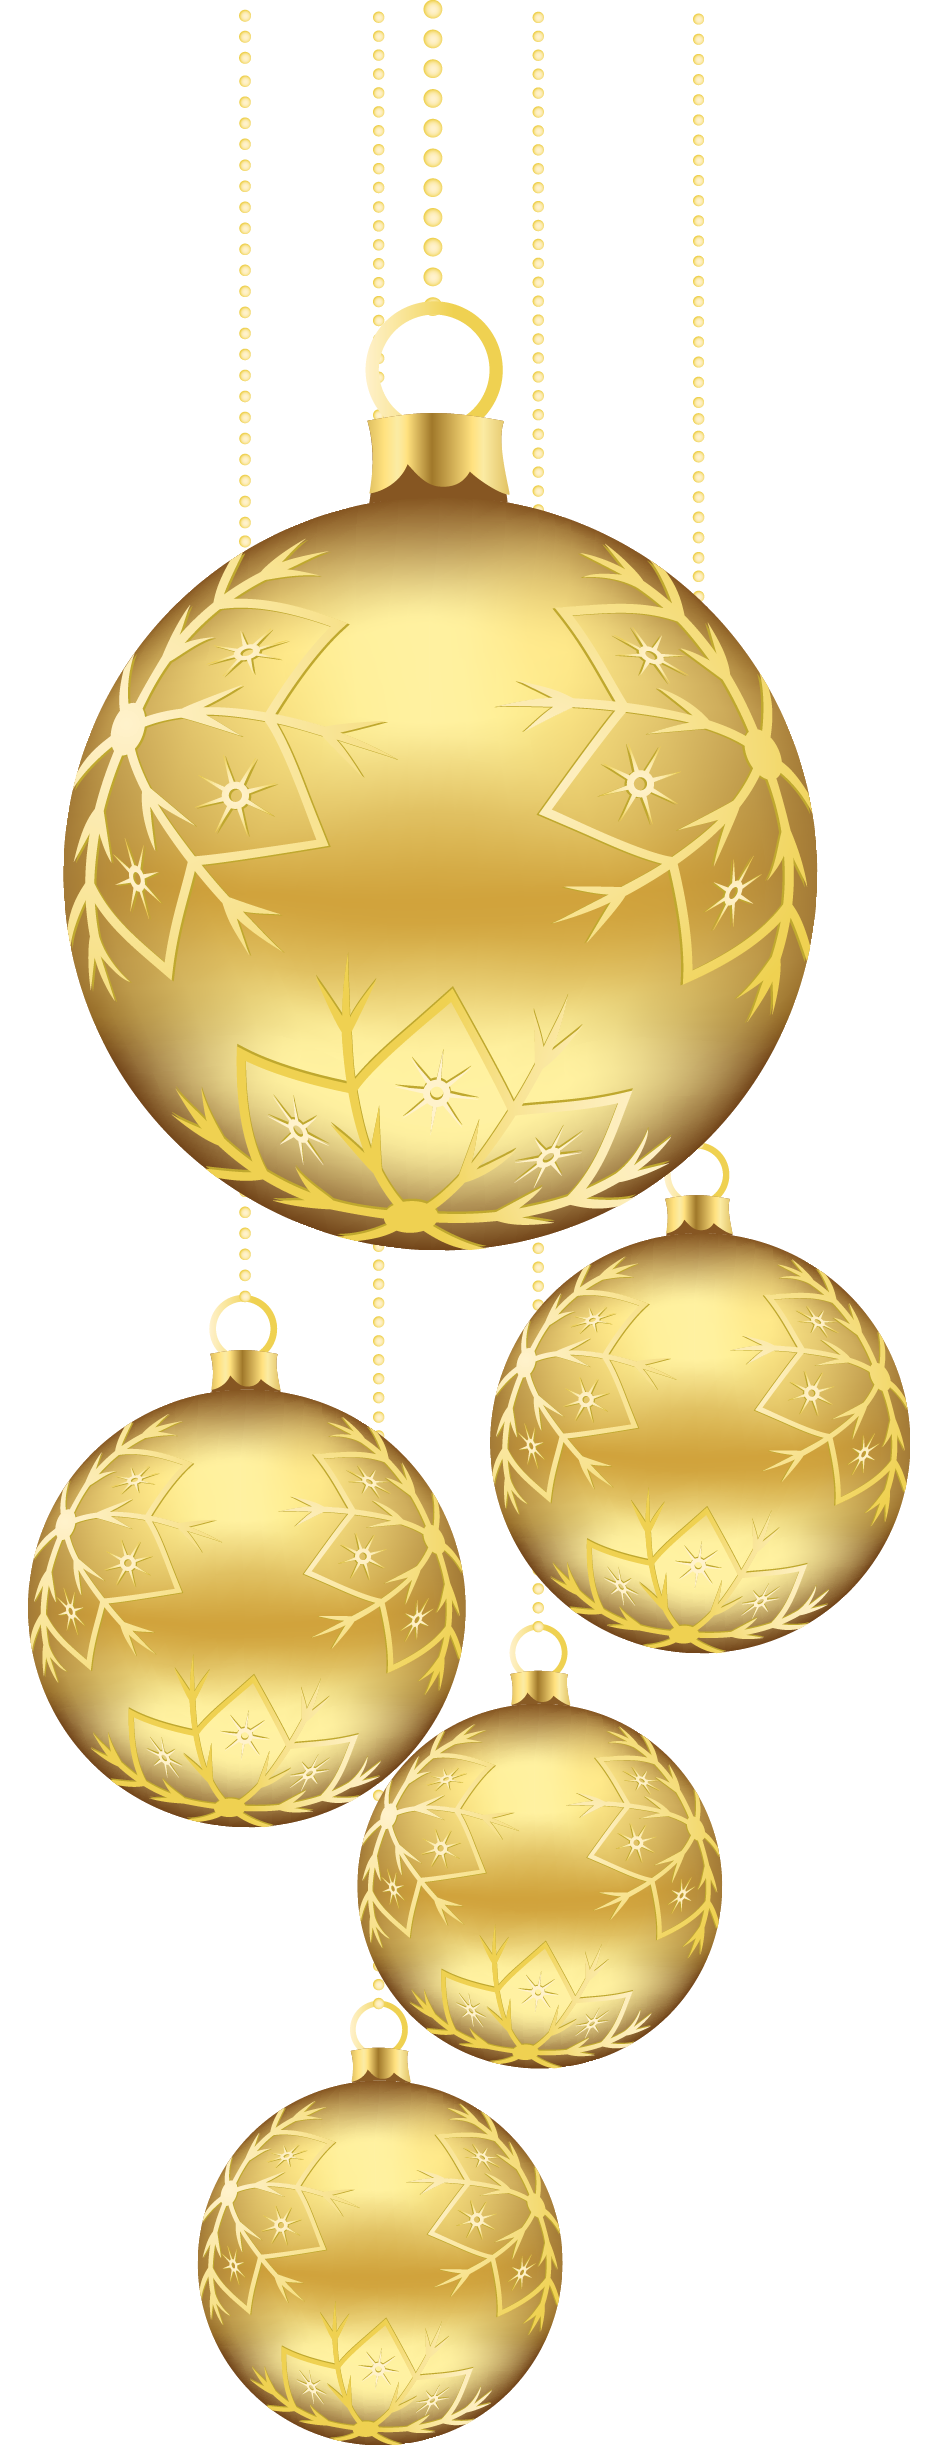 Fancy christmas ornaments background png. Golden balls picture gallery